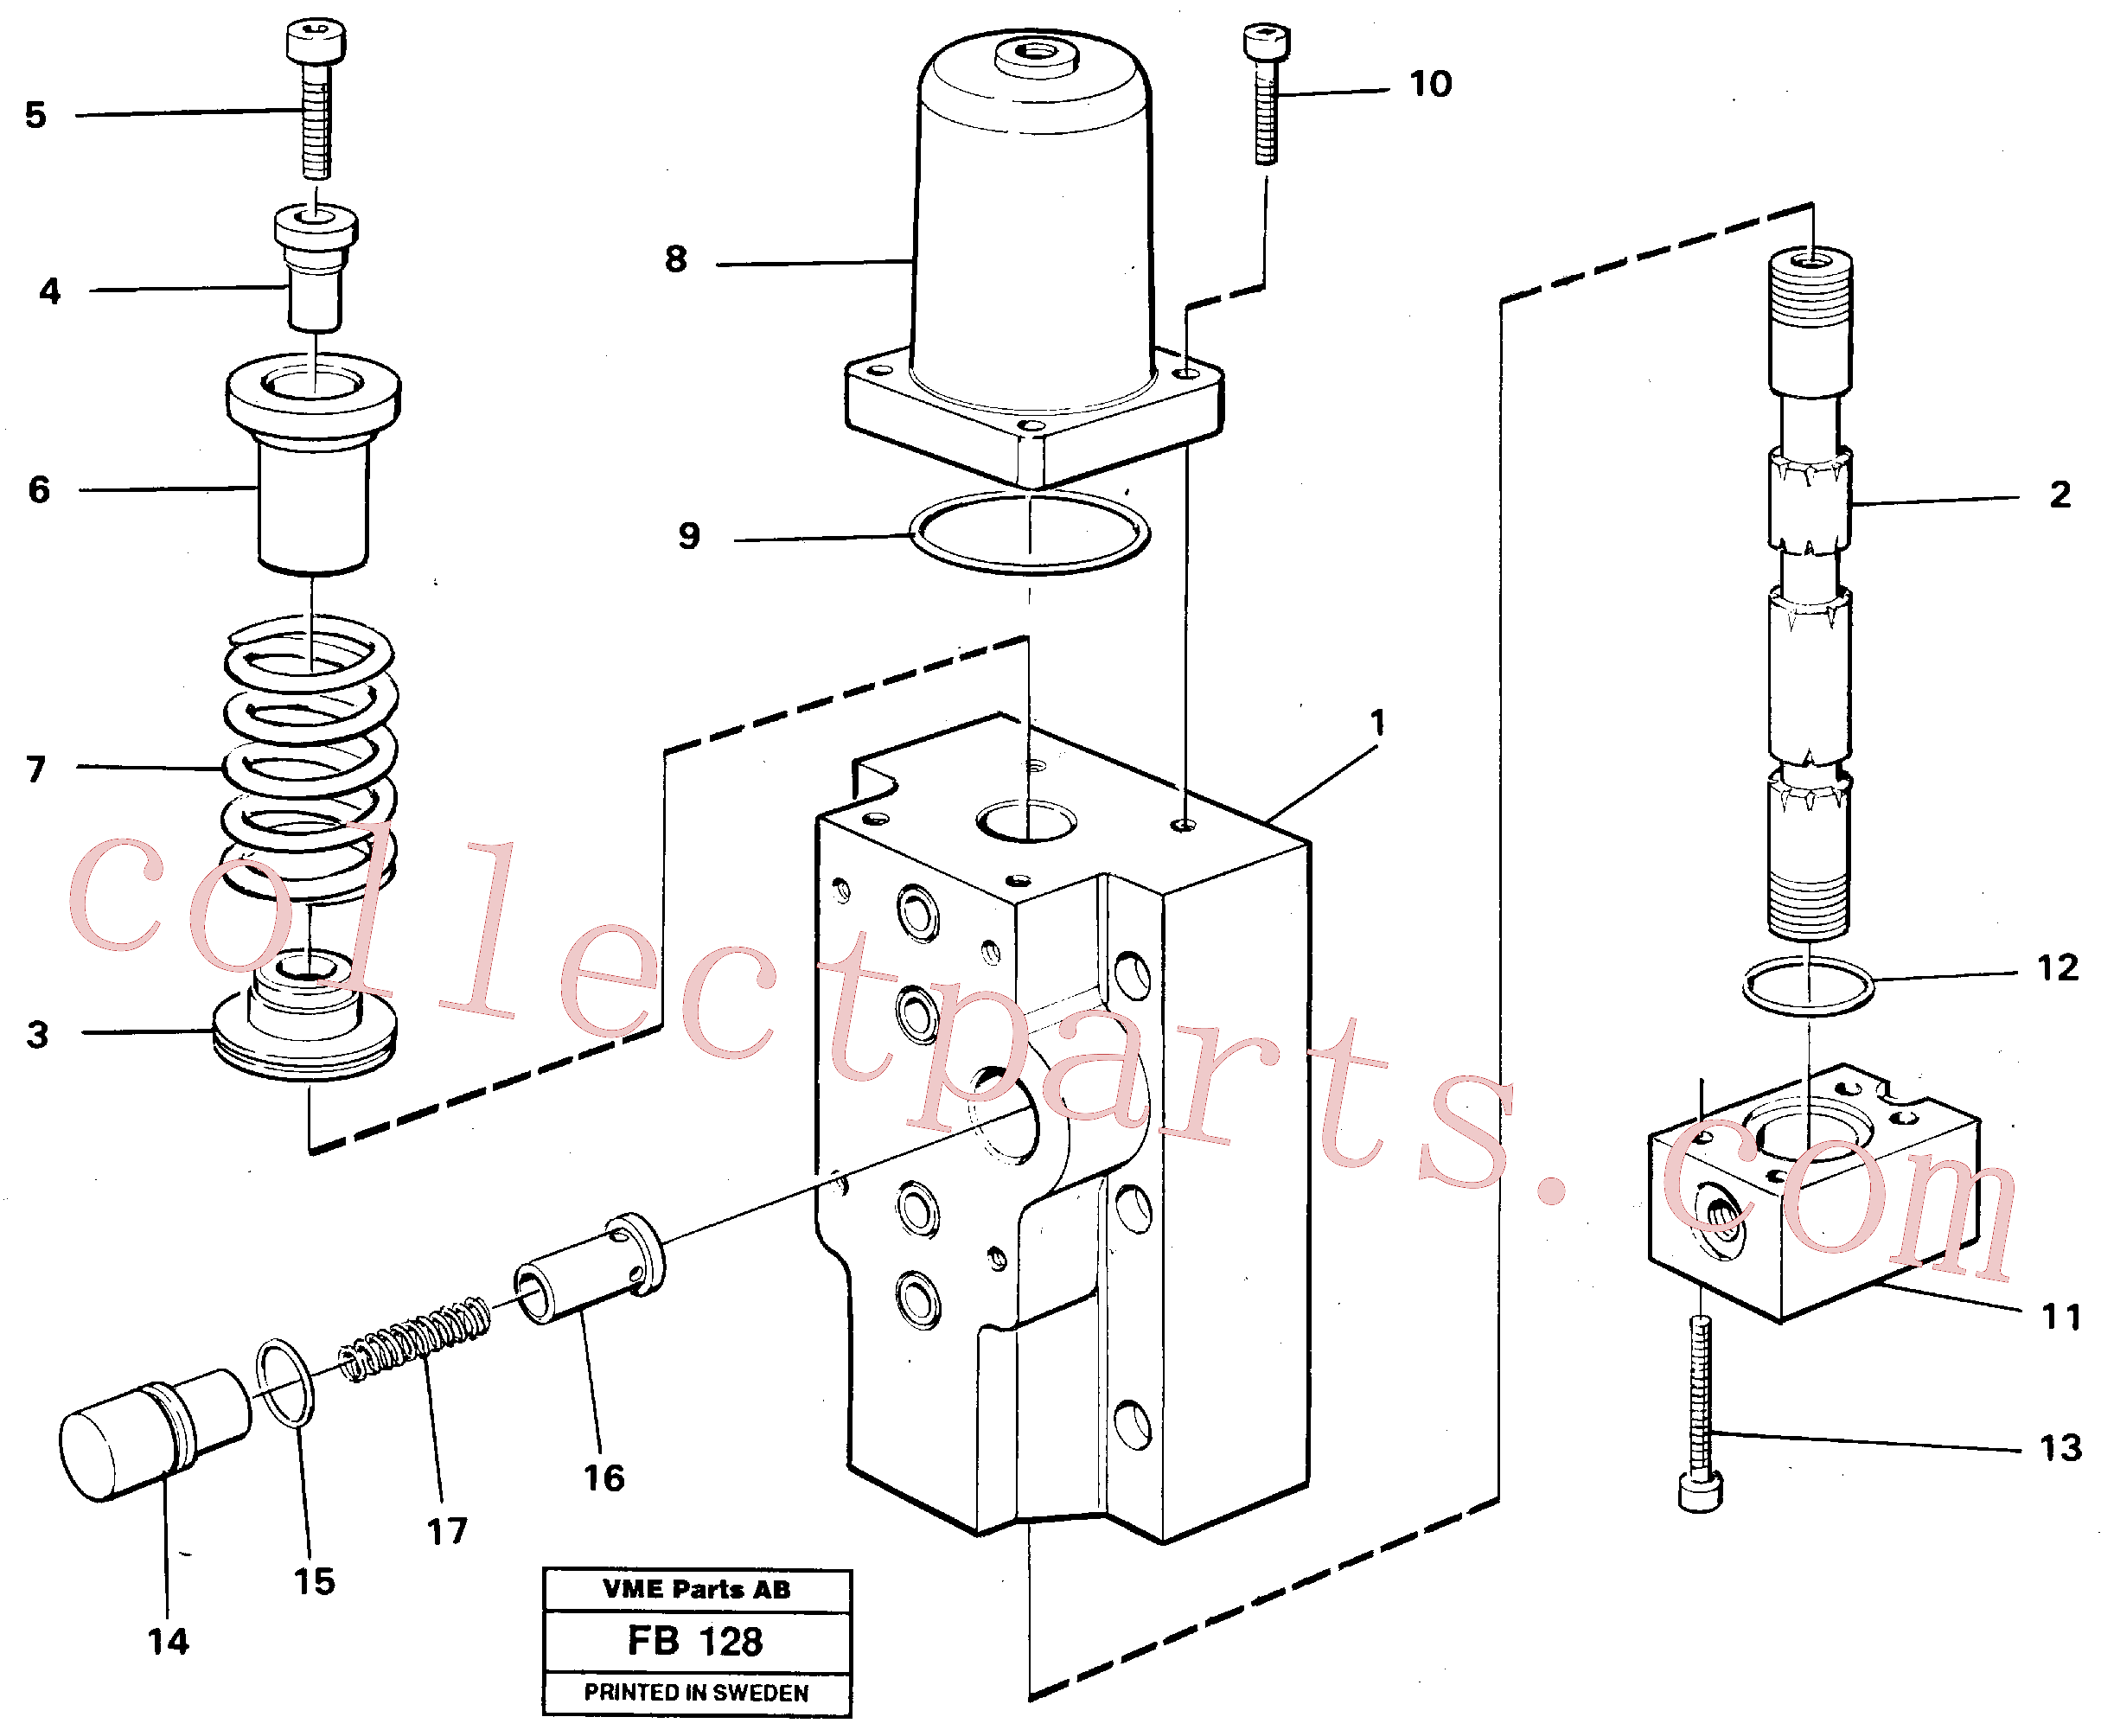 VOE925063 for Volvo Four-way valves Primary(FB128 assembly)